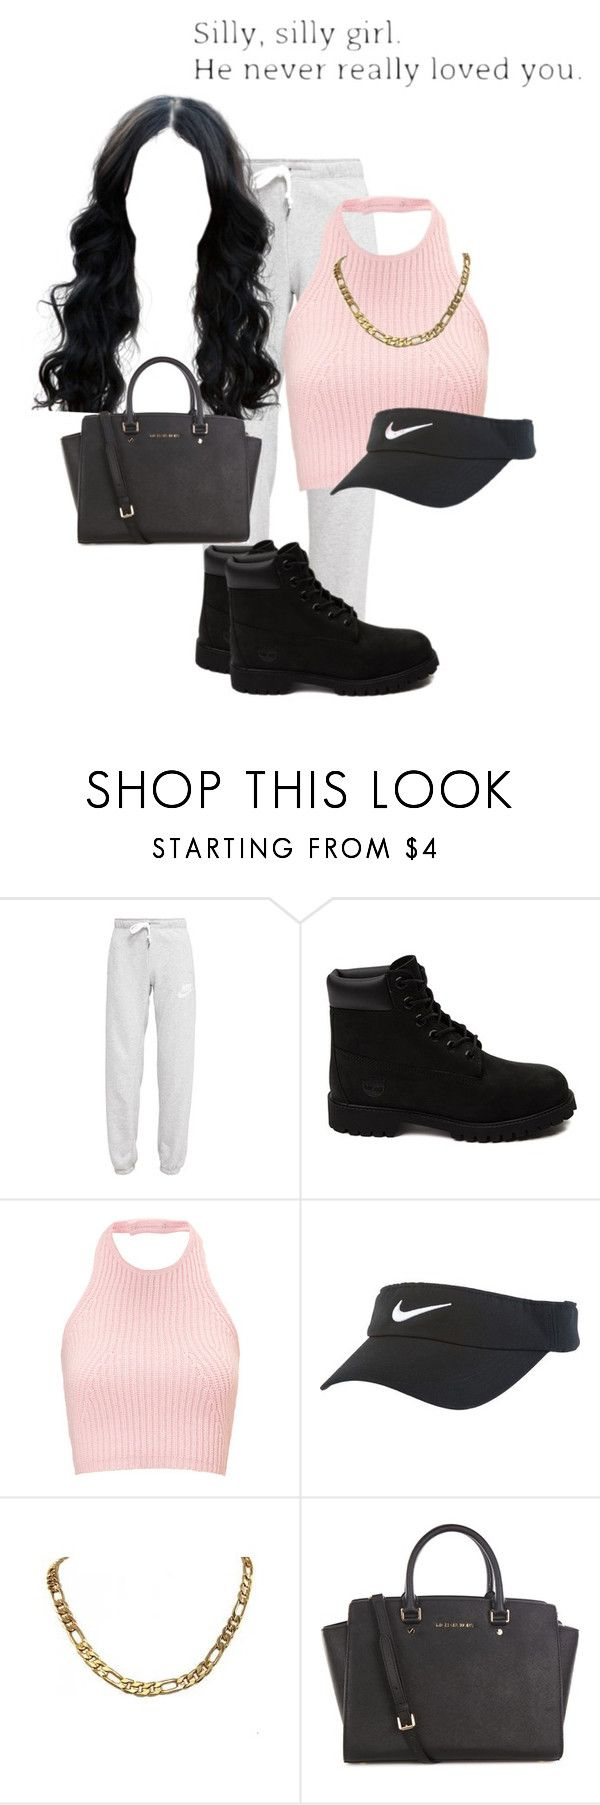 """1:43 AM add me on snapchatt @ohhitsmanii"" by jiggyshawty ❤ liked on Polyvore featuring NIKE, Timberland and MICHAEL Michael Kors"